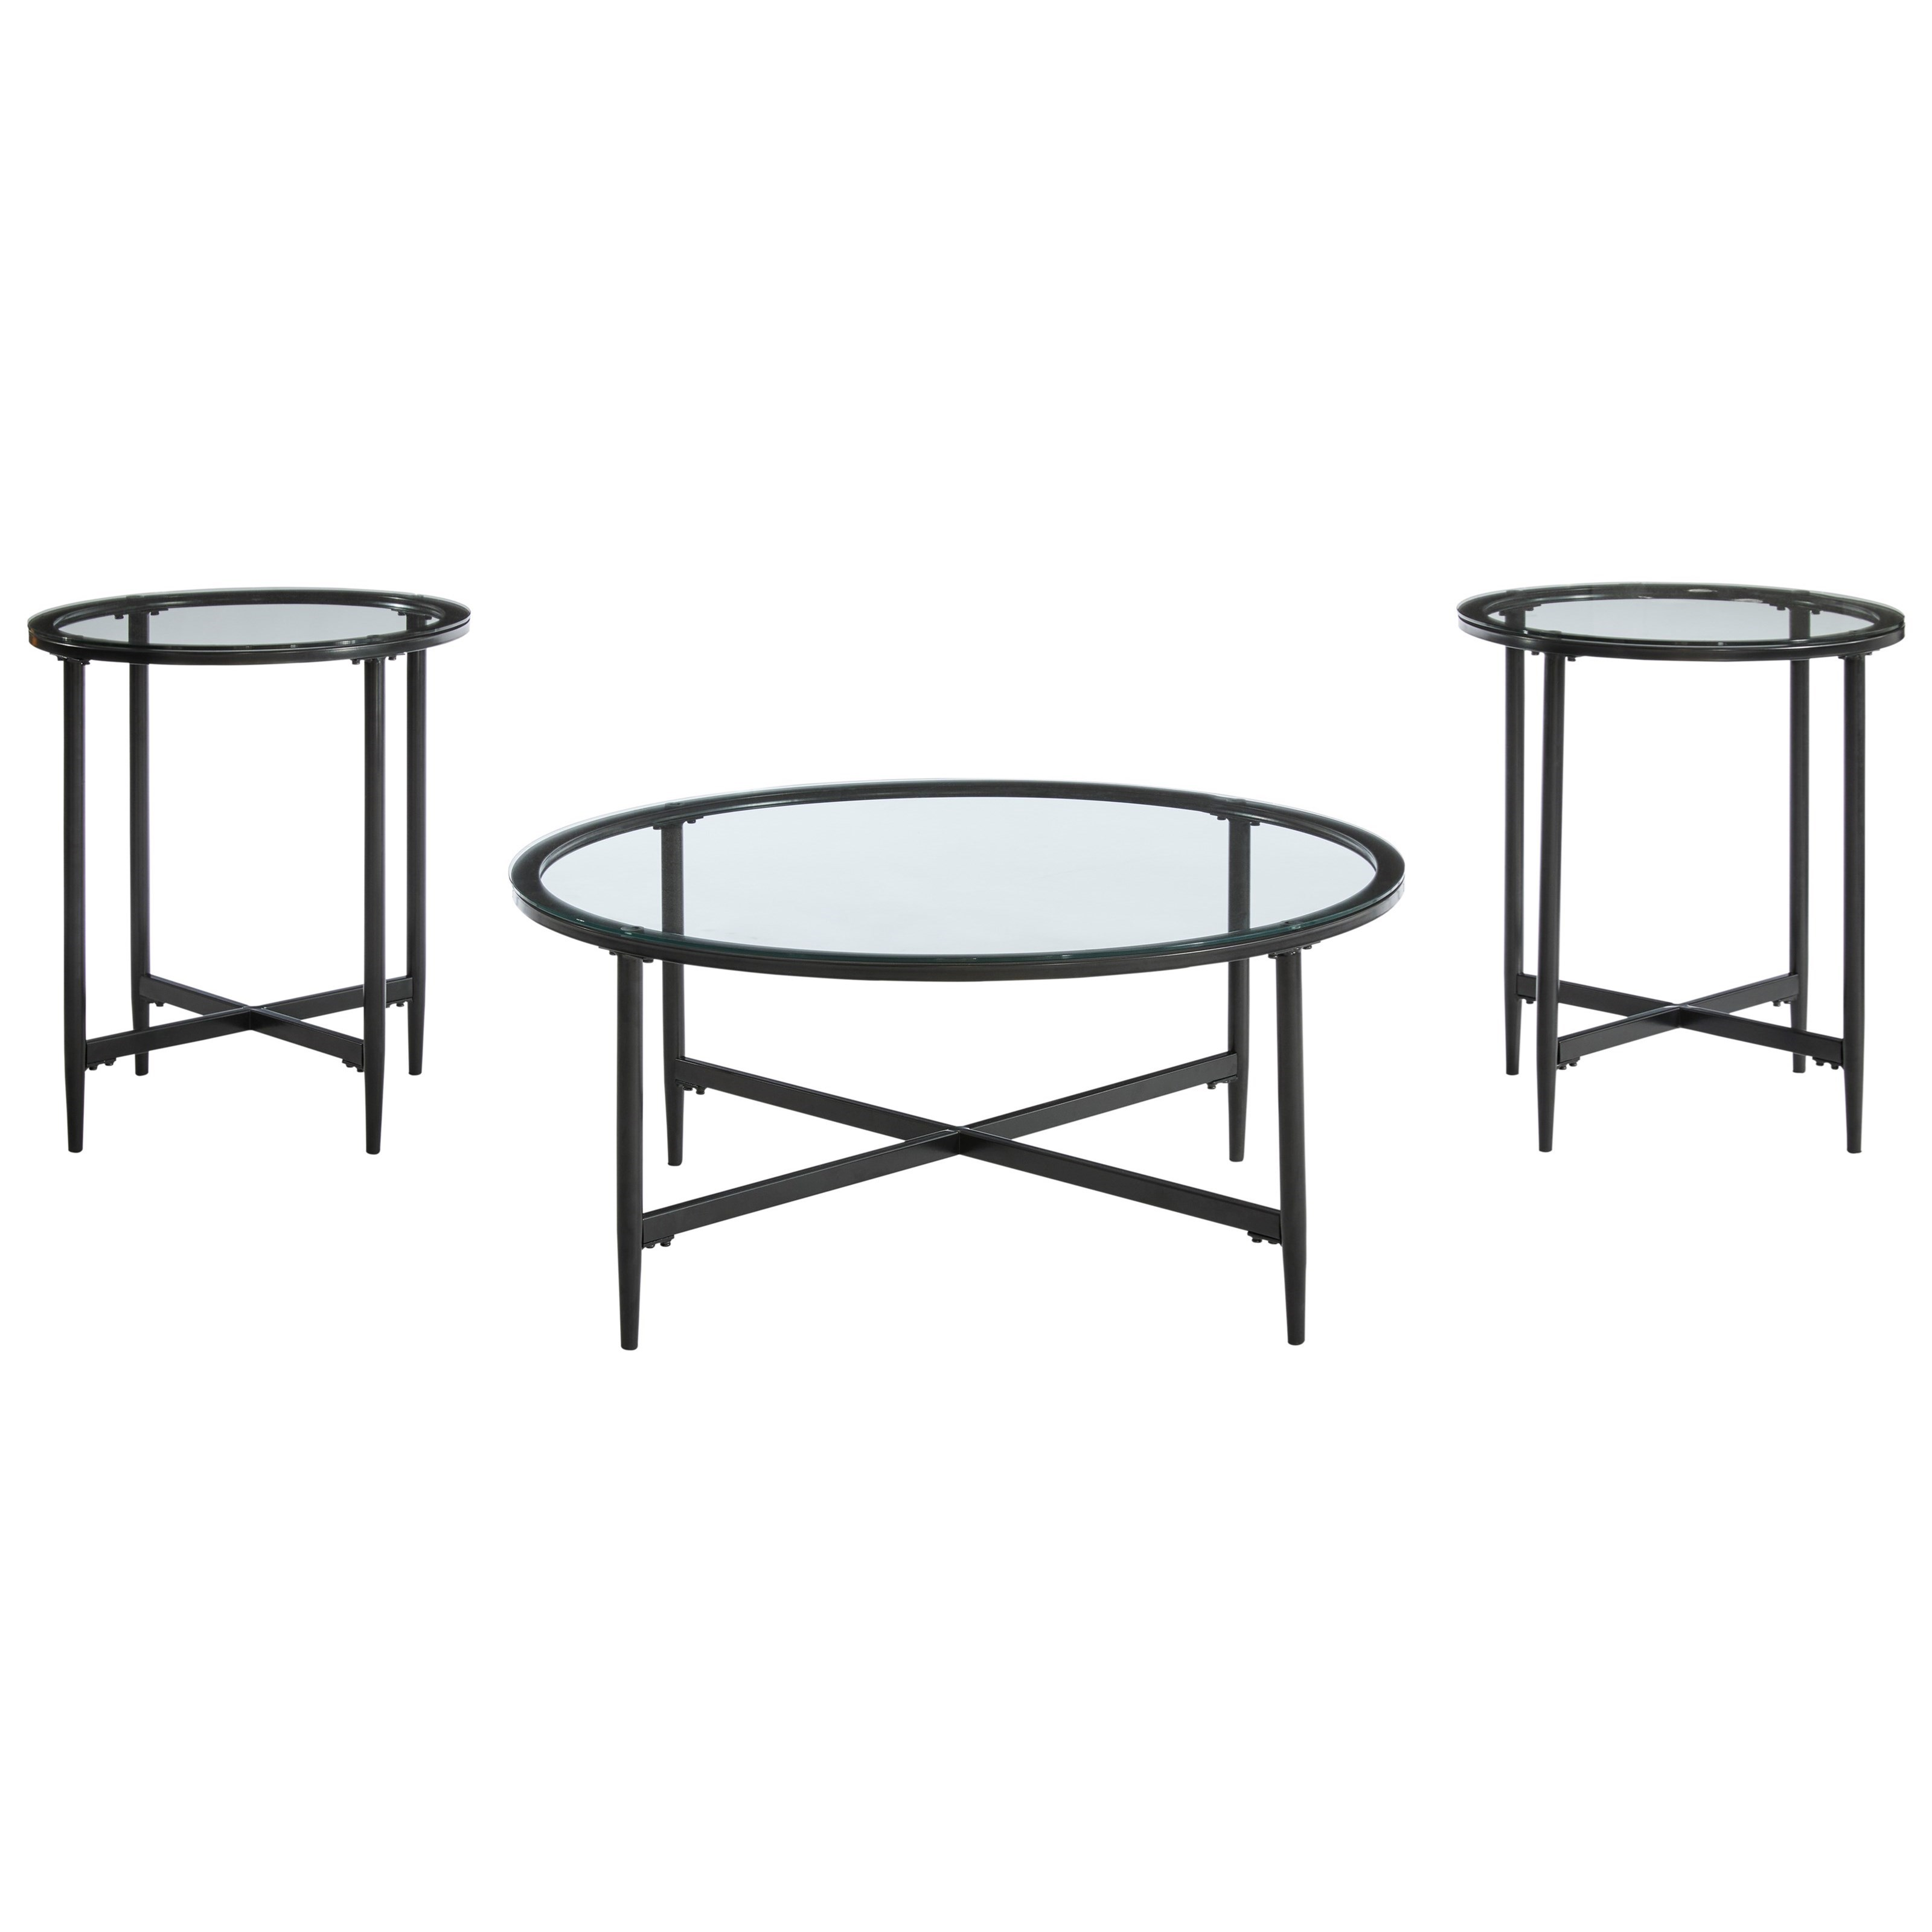 Stetzer 3-Piece Accent Table Set by Signature Design by Ashley at Furniture Barn